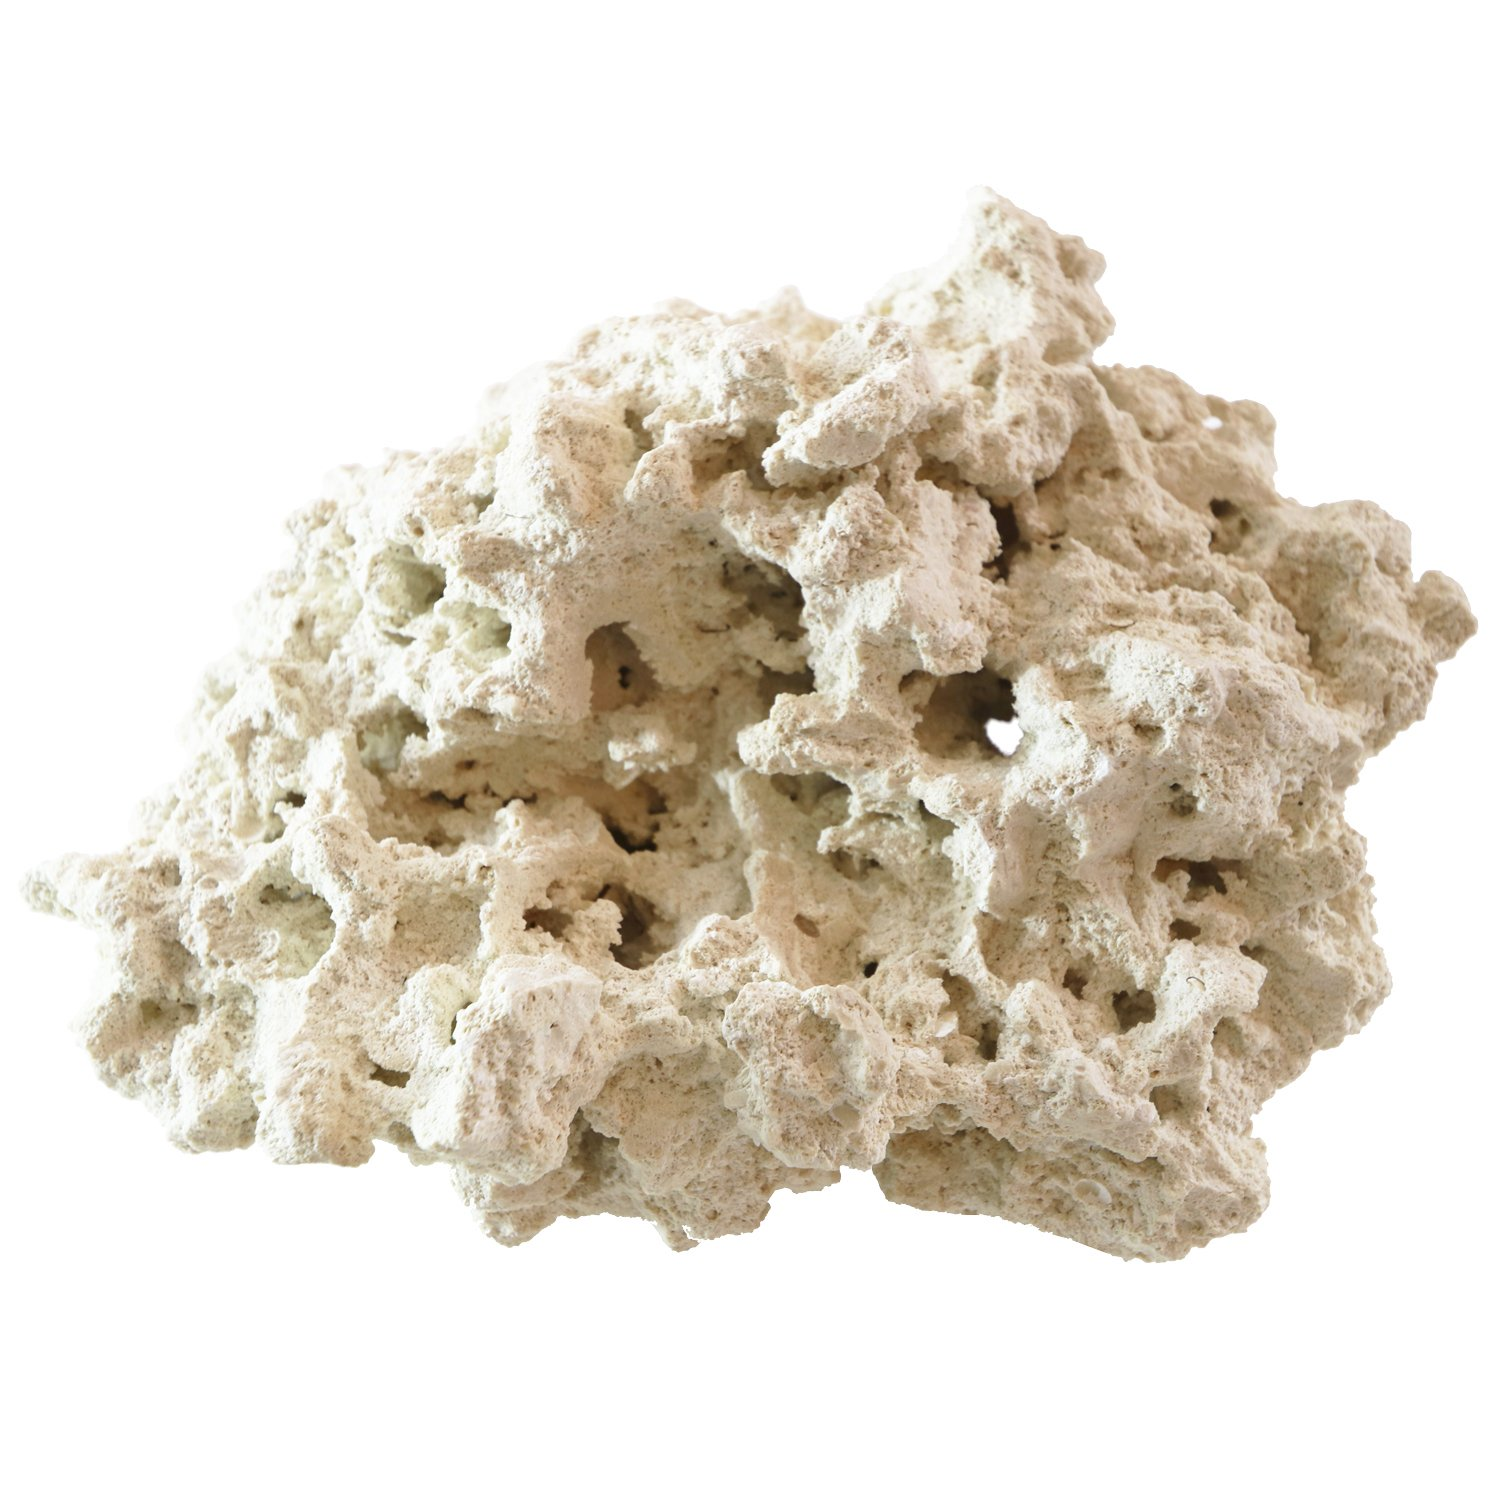 ARC Reef All New! Reef Stacker Dry Rock, All in 1 Aquascaping Kit for Saltwater Aquariums, 10 lbs. by ARC Reef